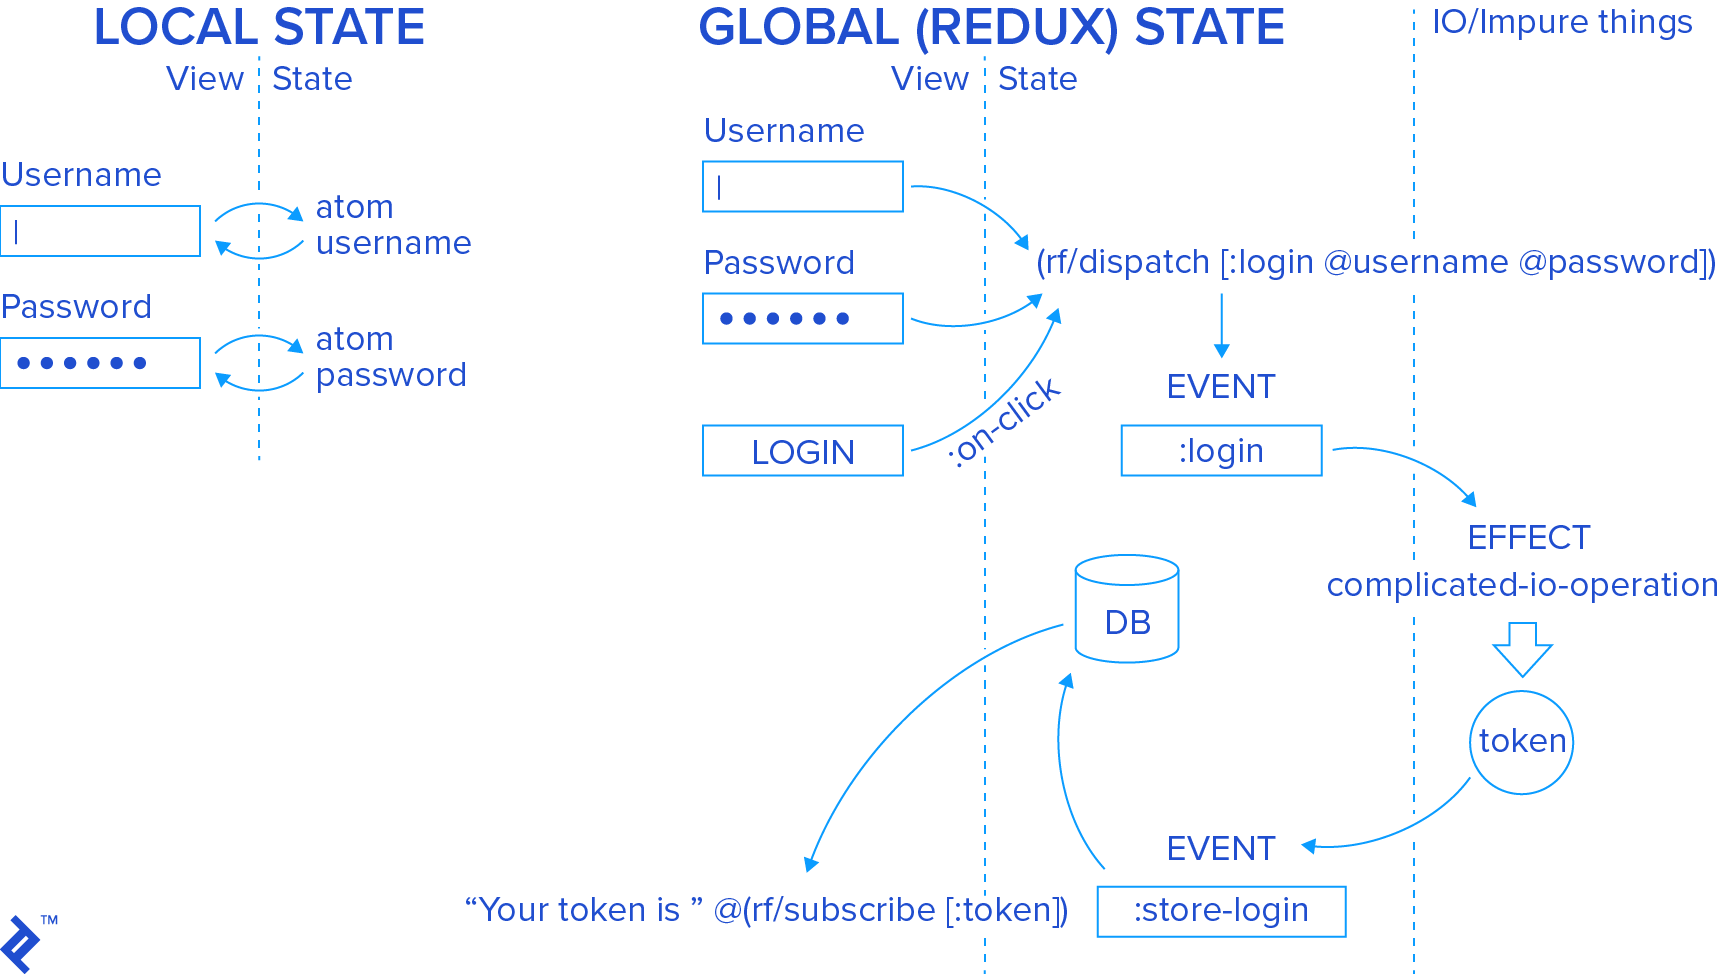 How local state and global (Redux) state work in the login example.